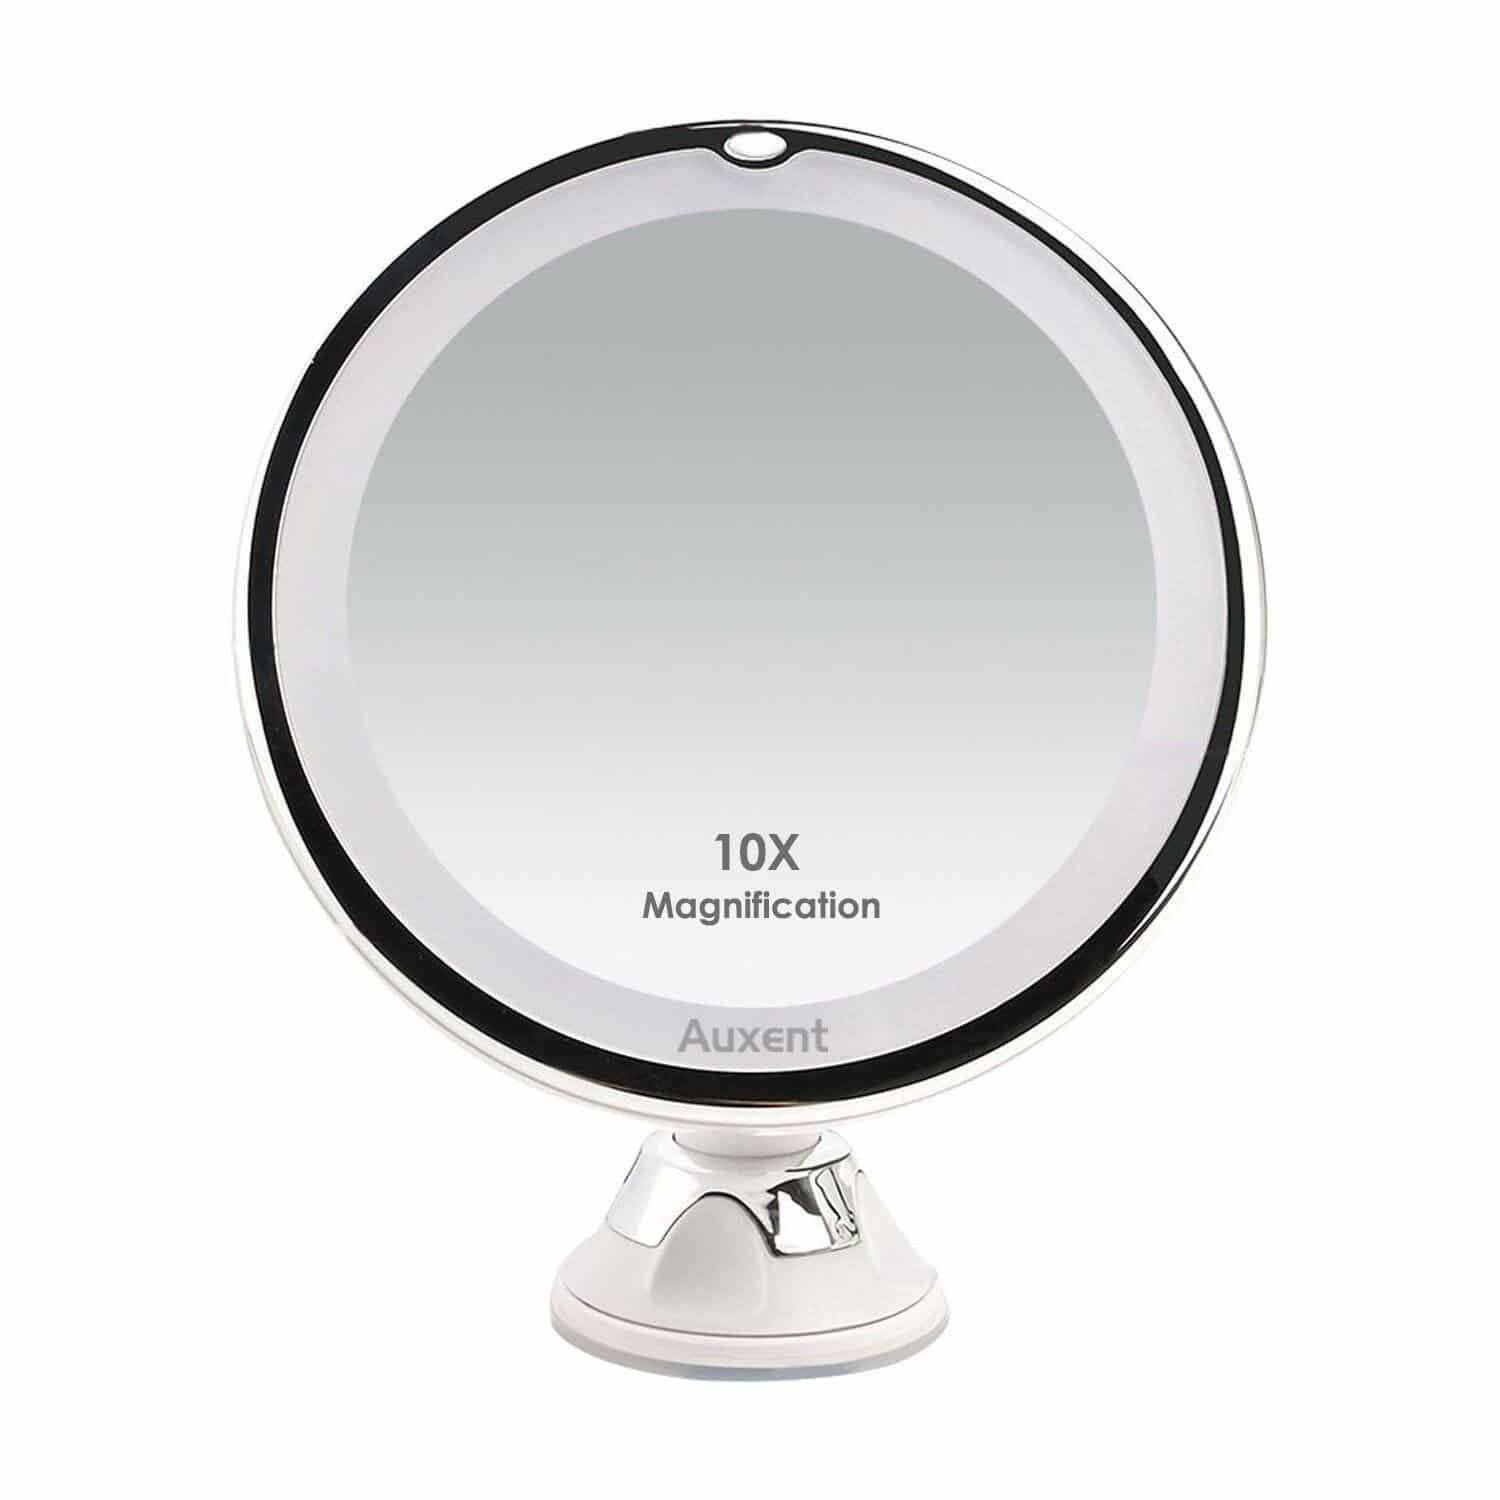 Top 10 Best Lighted Makeup Mirrors In 2020 Most Review Hqreview Makeup Mirror With Lights Led Makeup Mirror Mirror